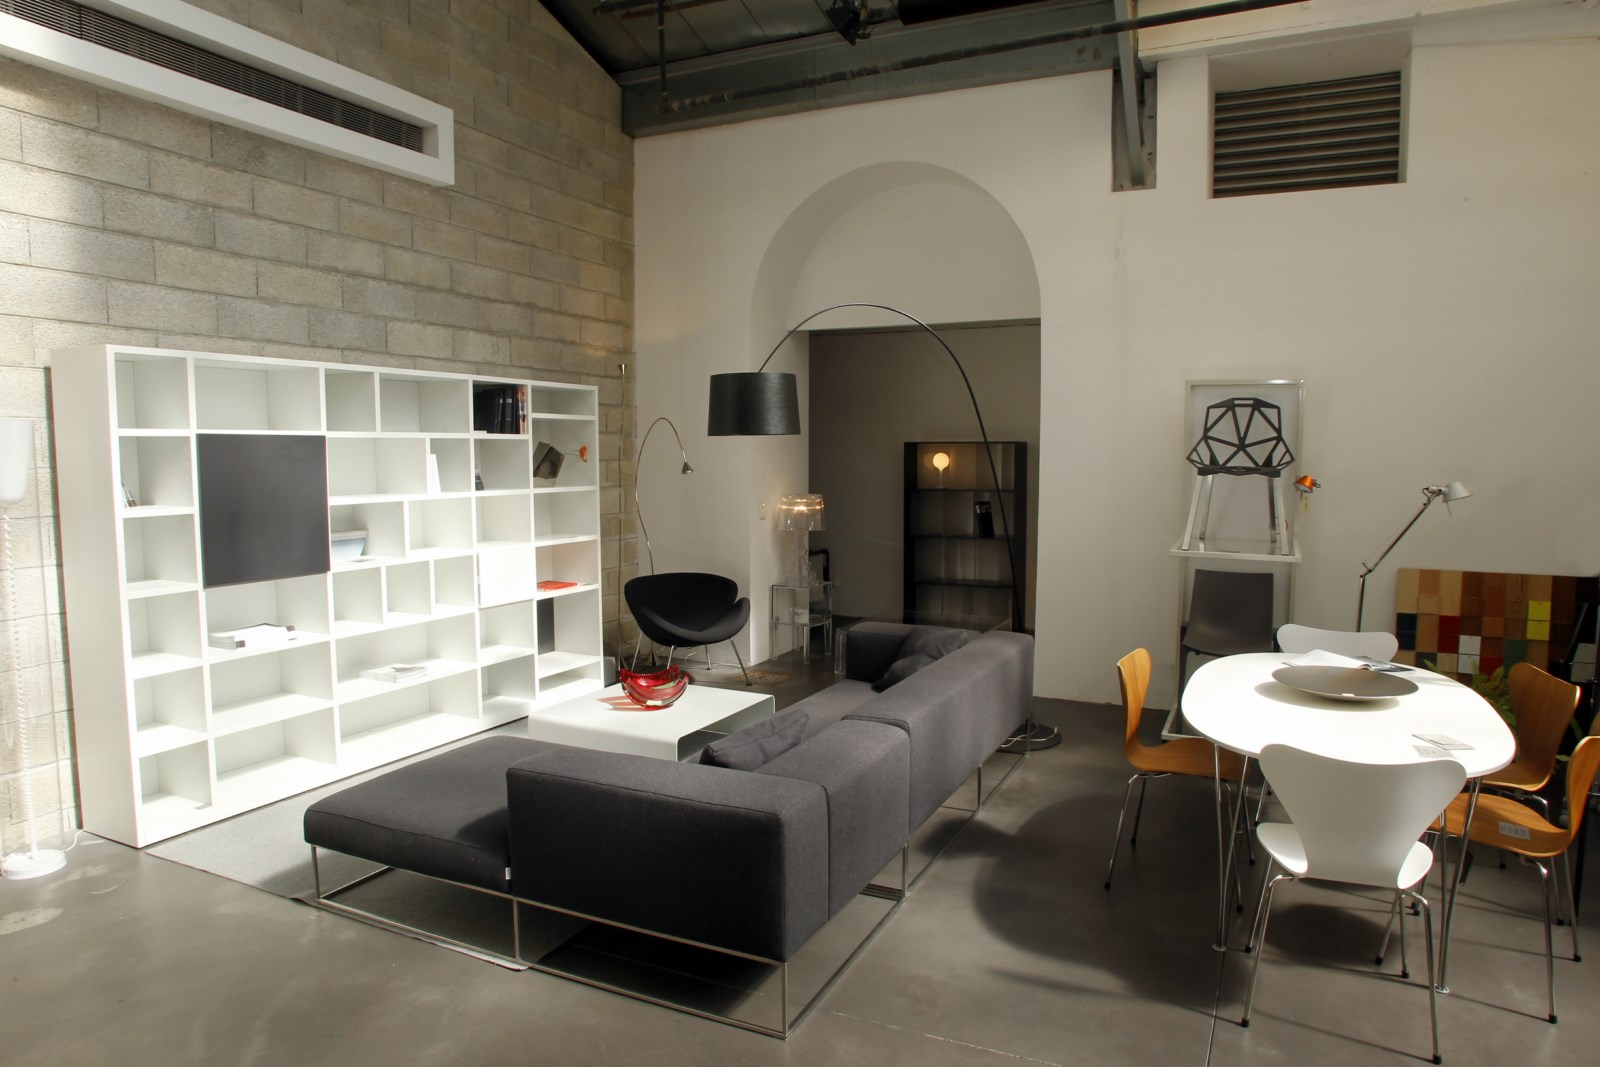 meubles contemporains magasin marseille. Black Bedroom Furniture Sets. Home Design Ideas